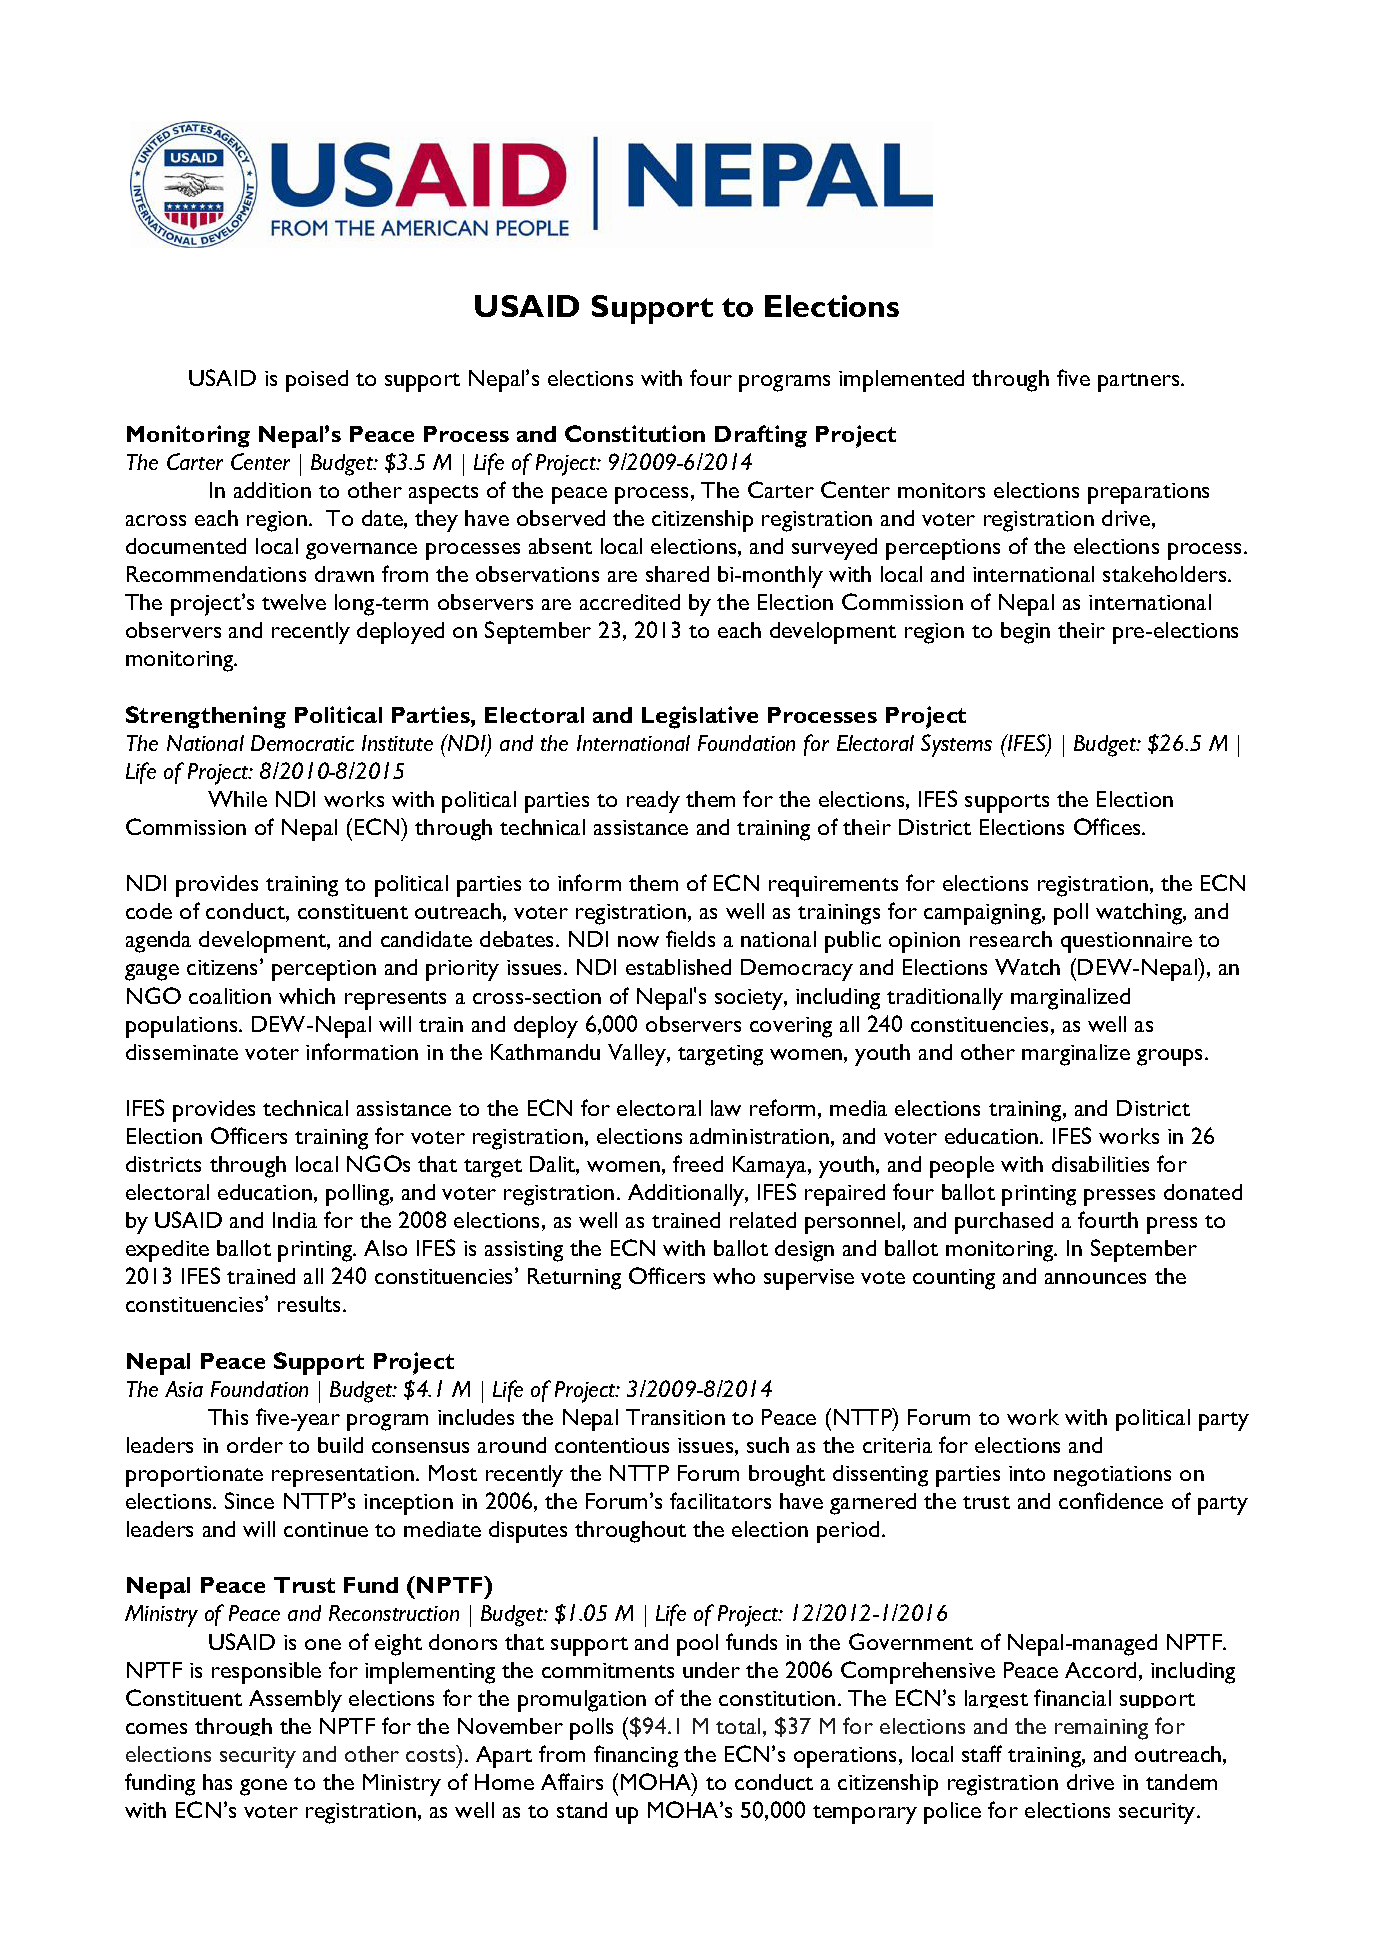 USAID Support Nepal's Elections